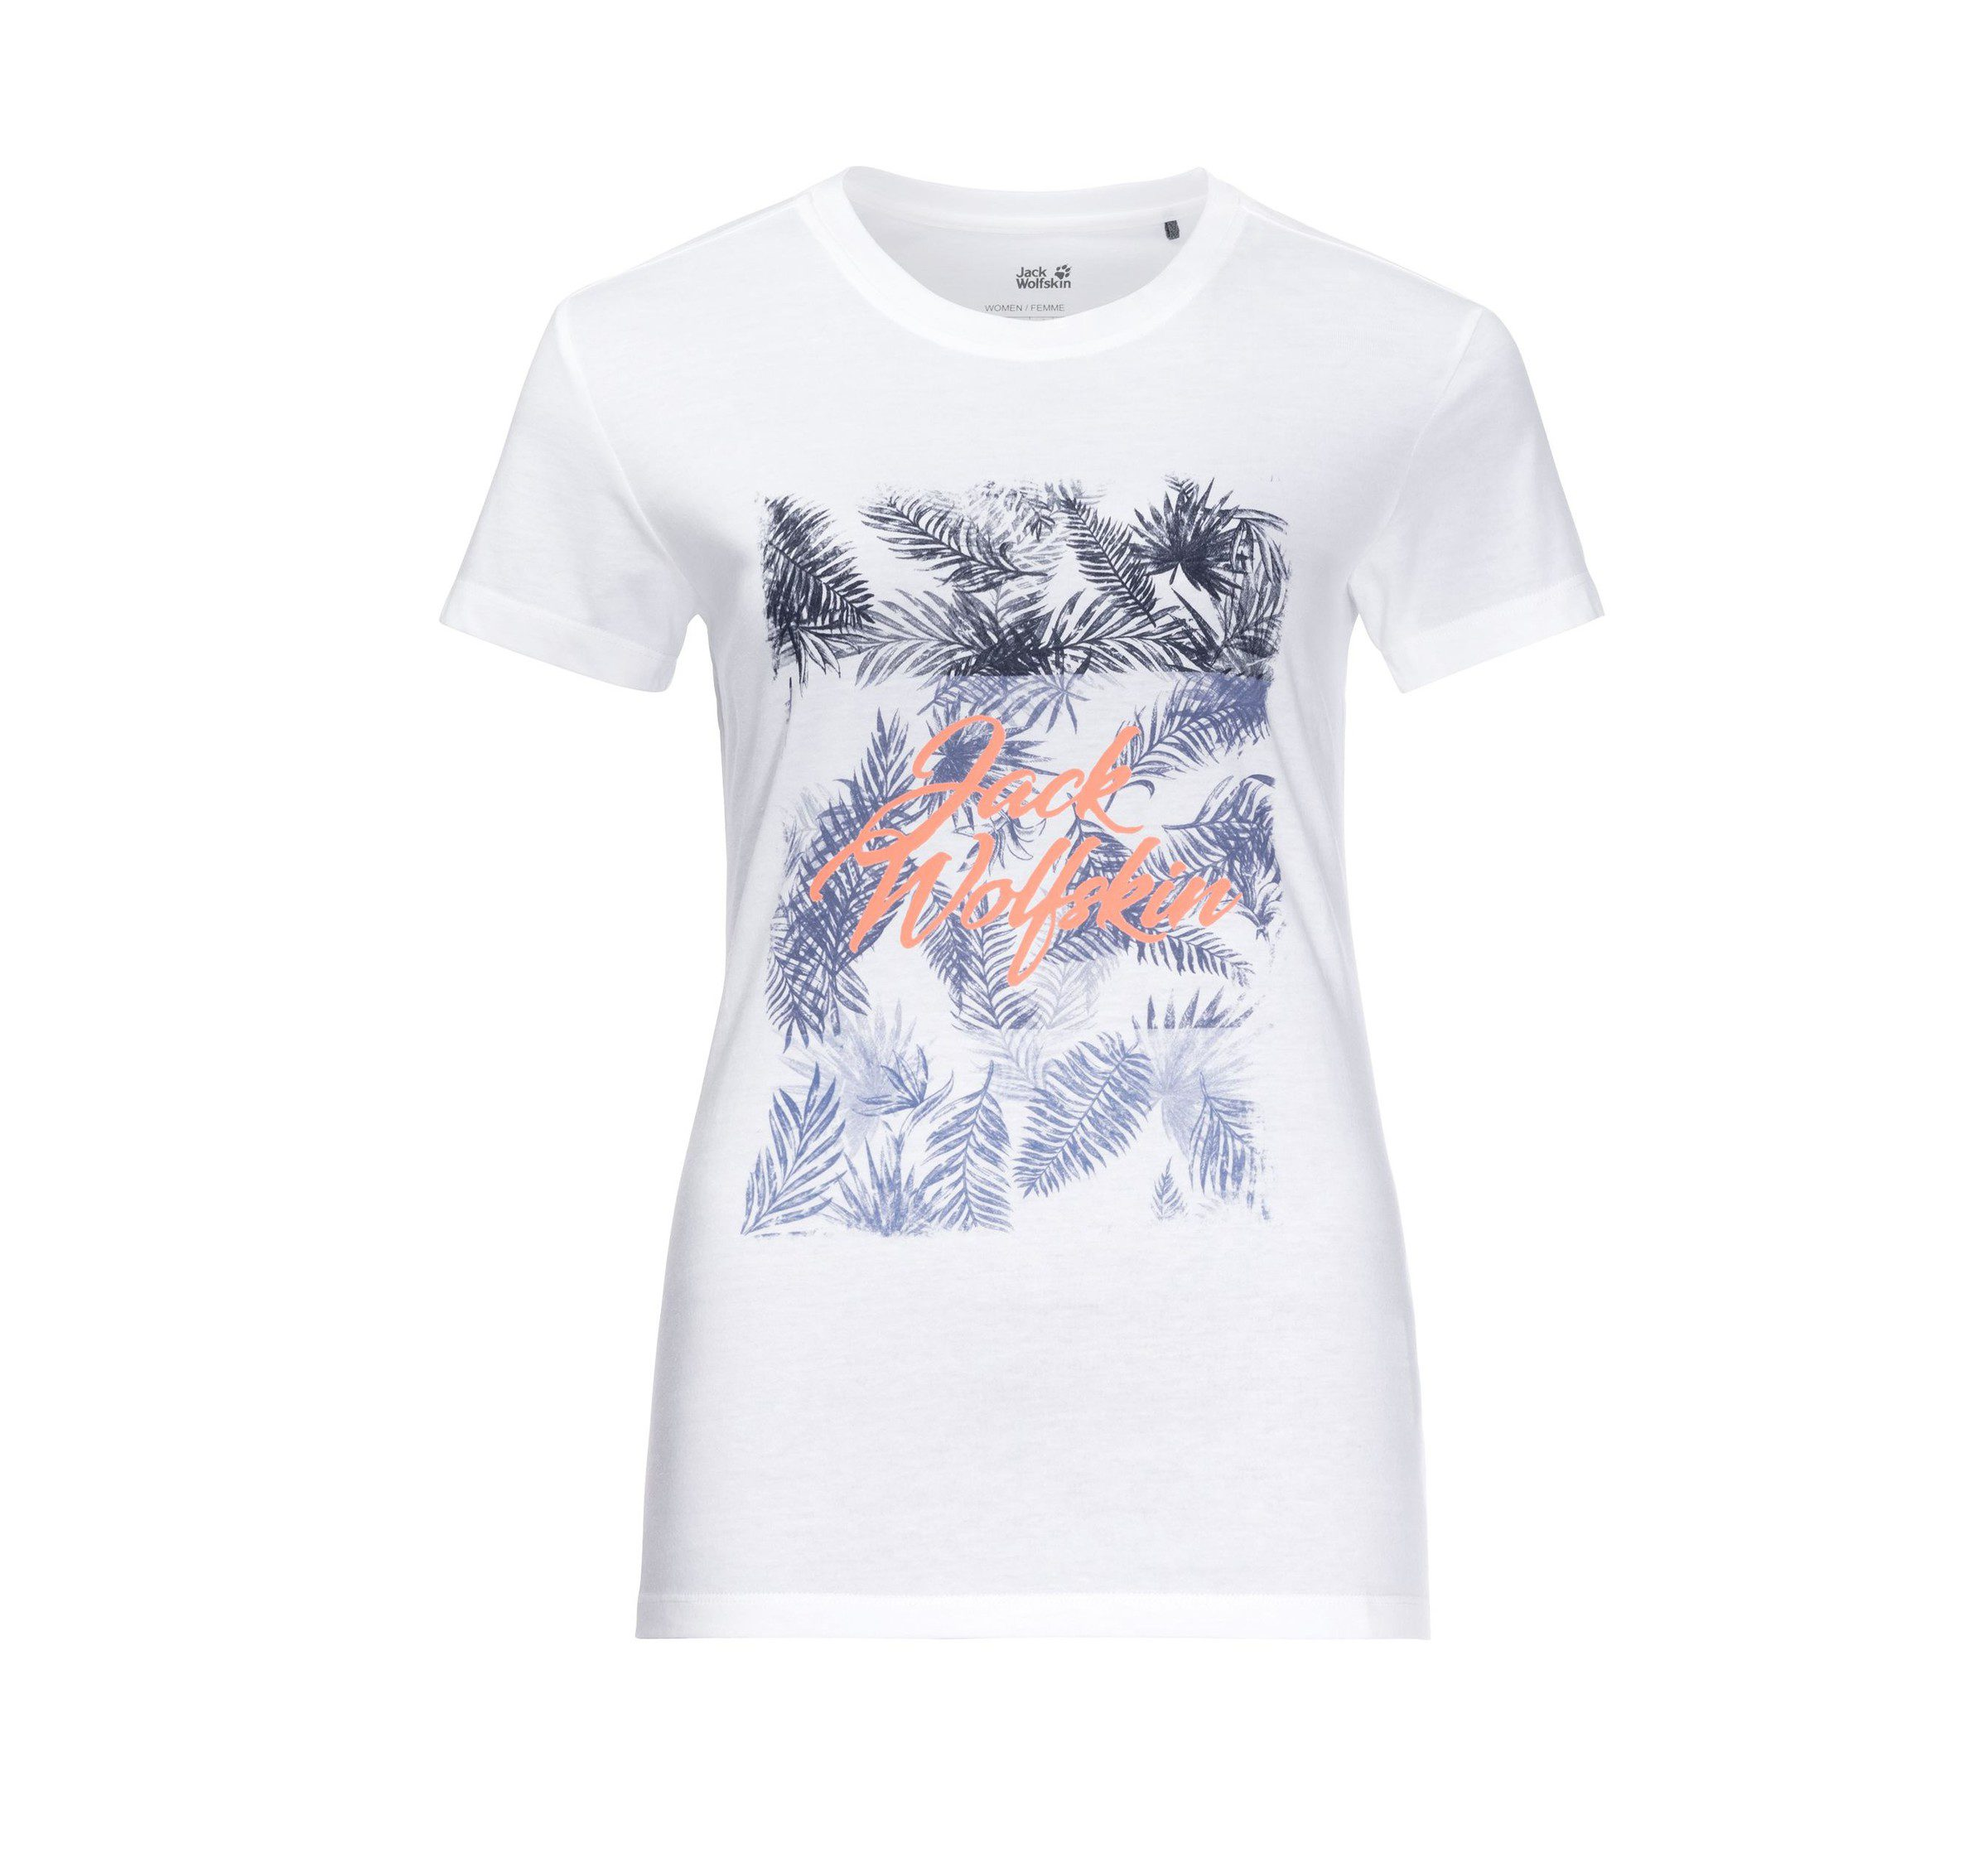 Jack Wolfskin Royal Palm Paw T-Shirt